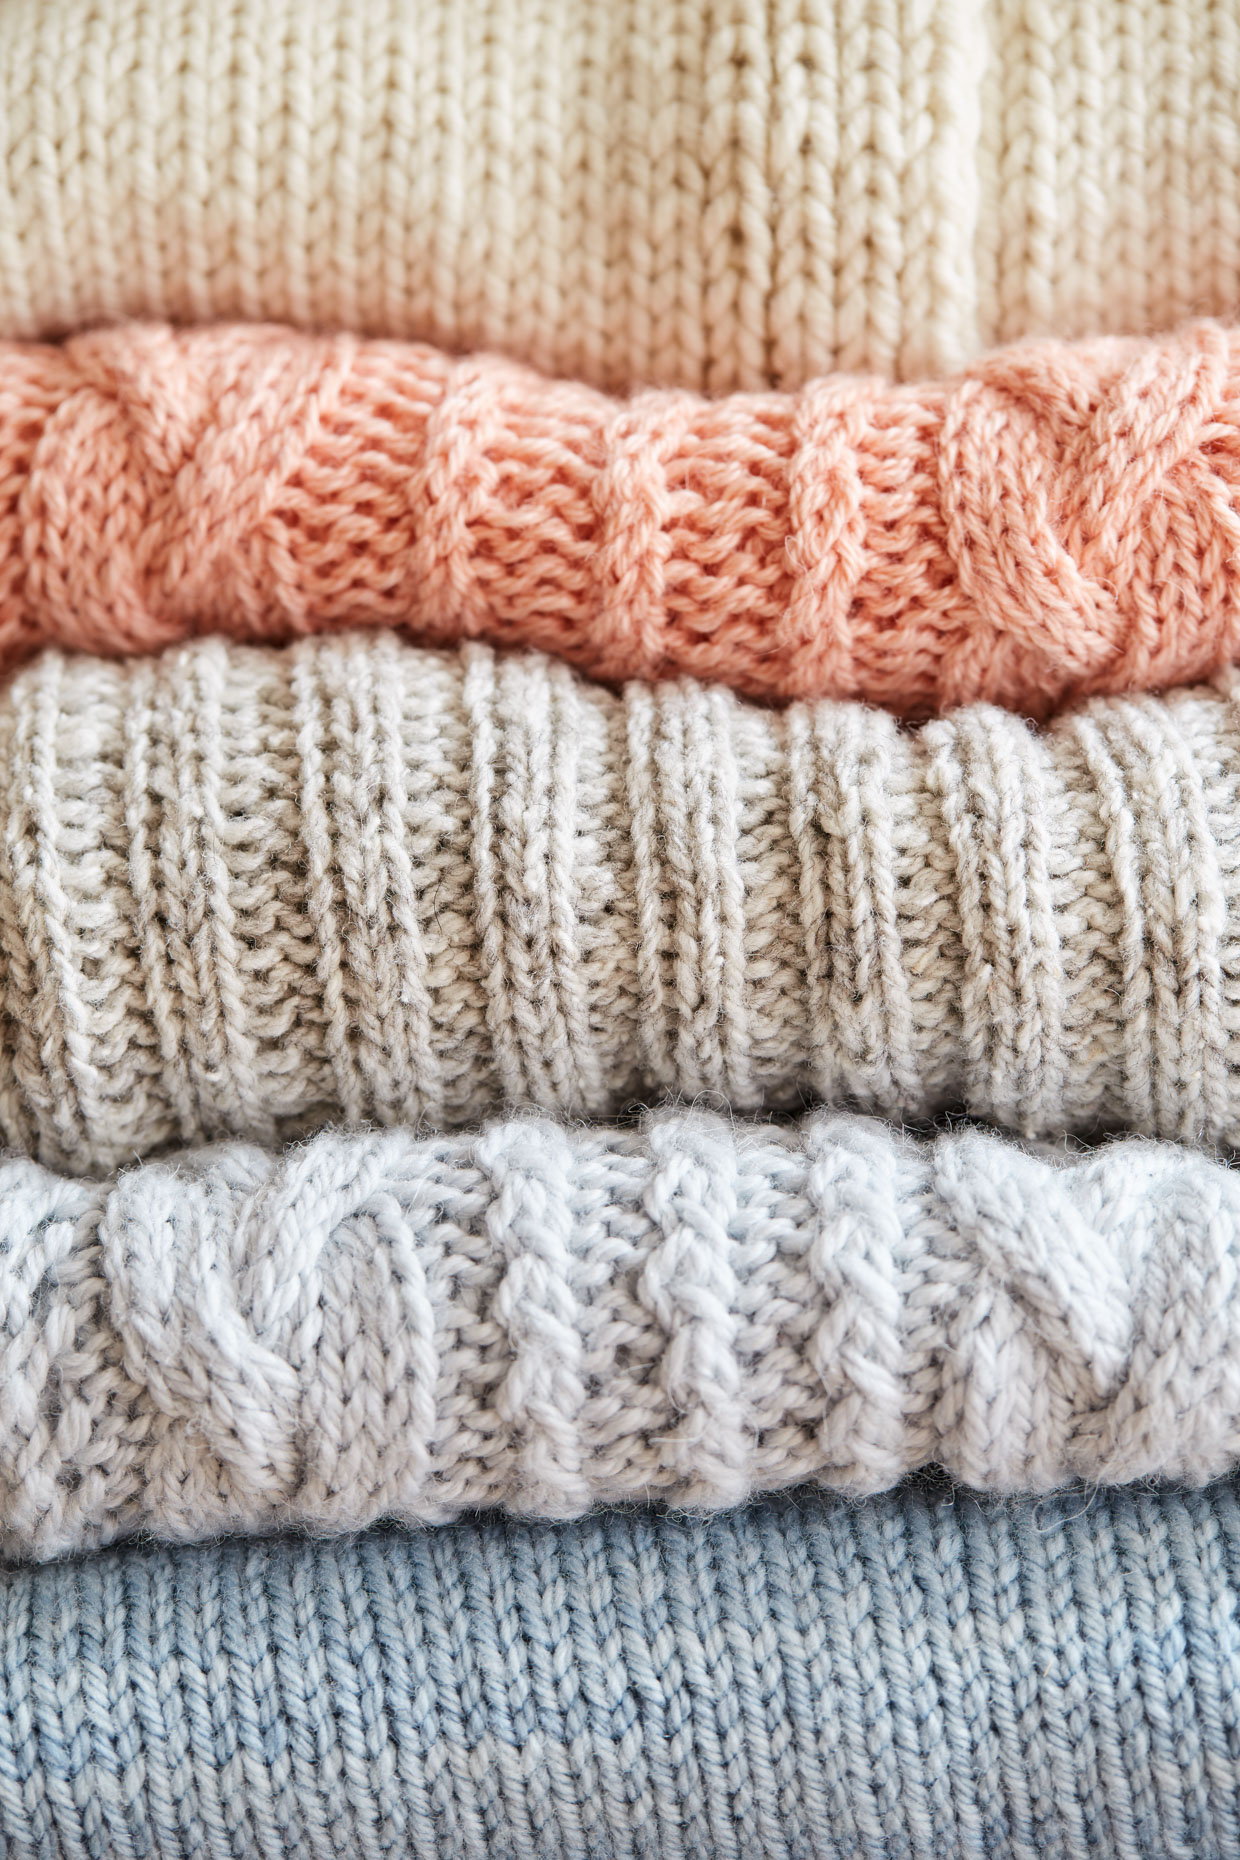 Knit Sweater Details